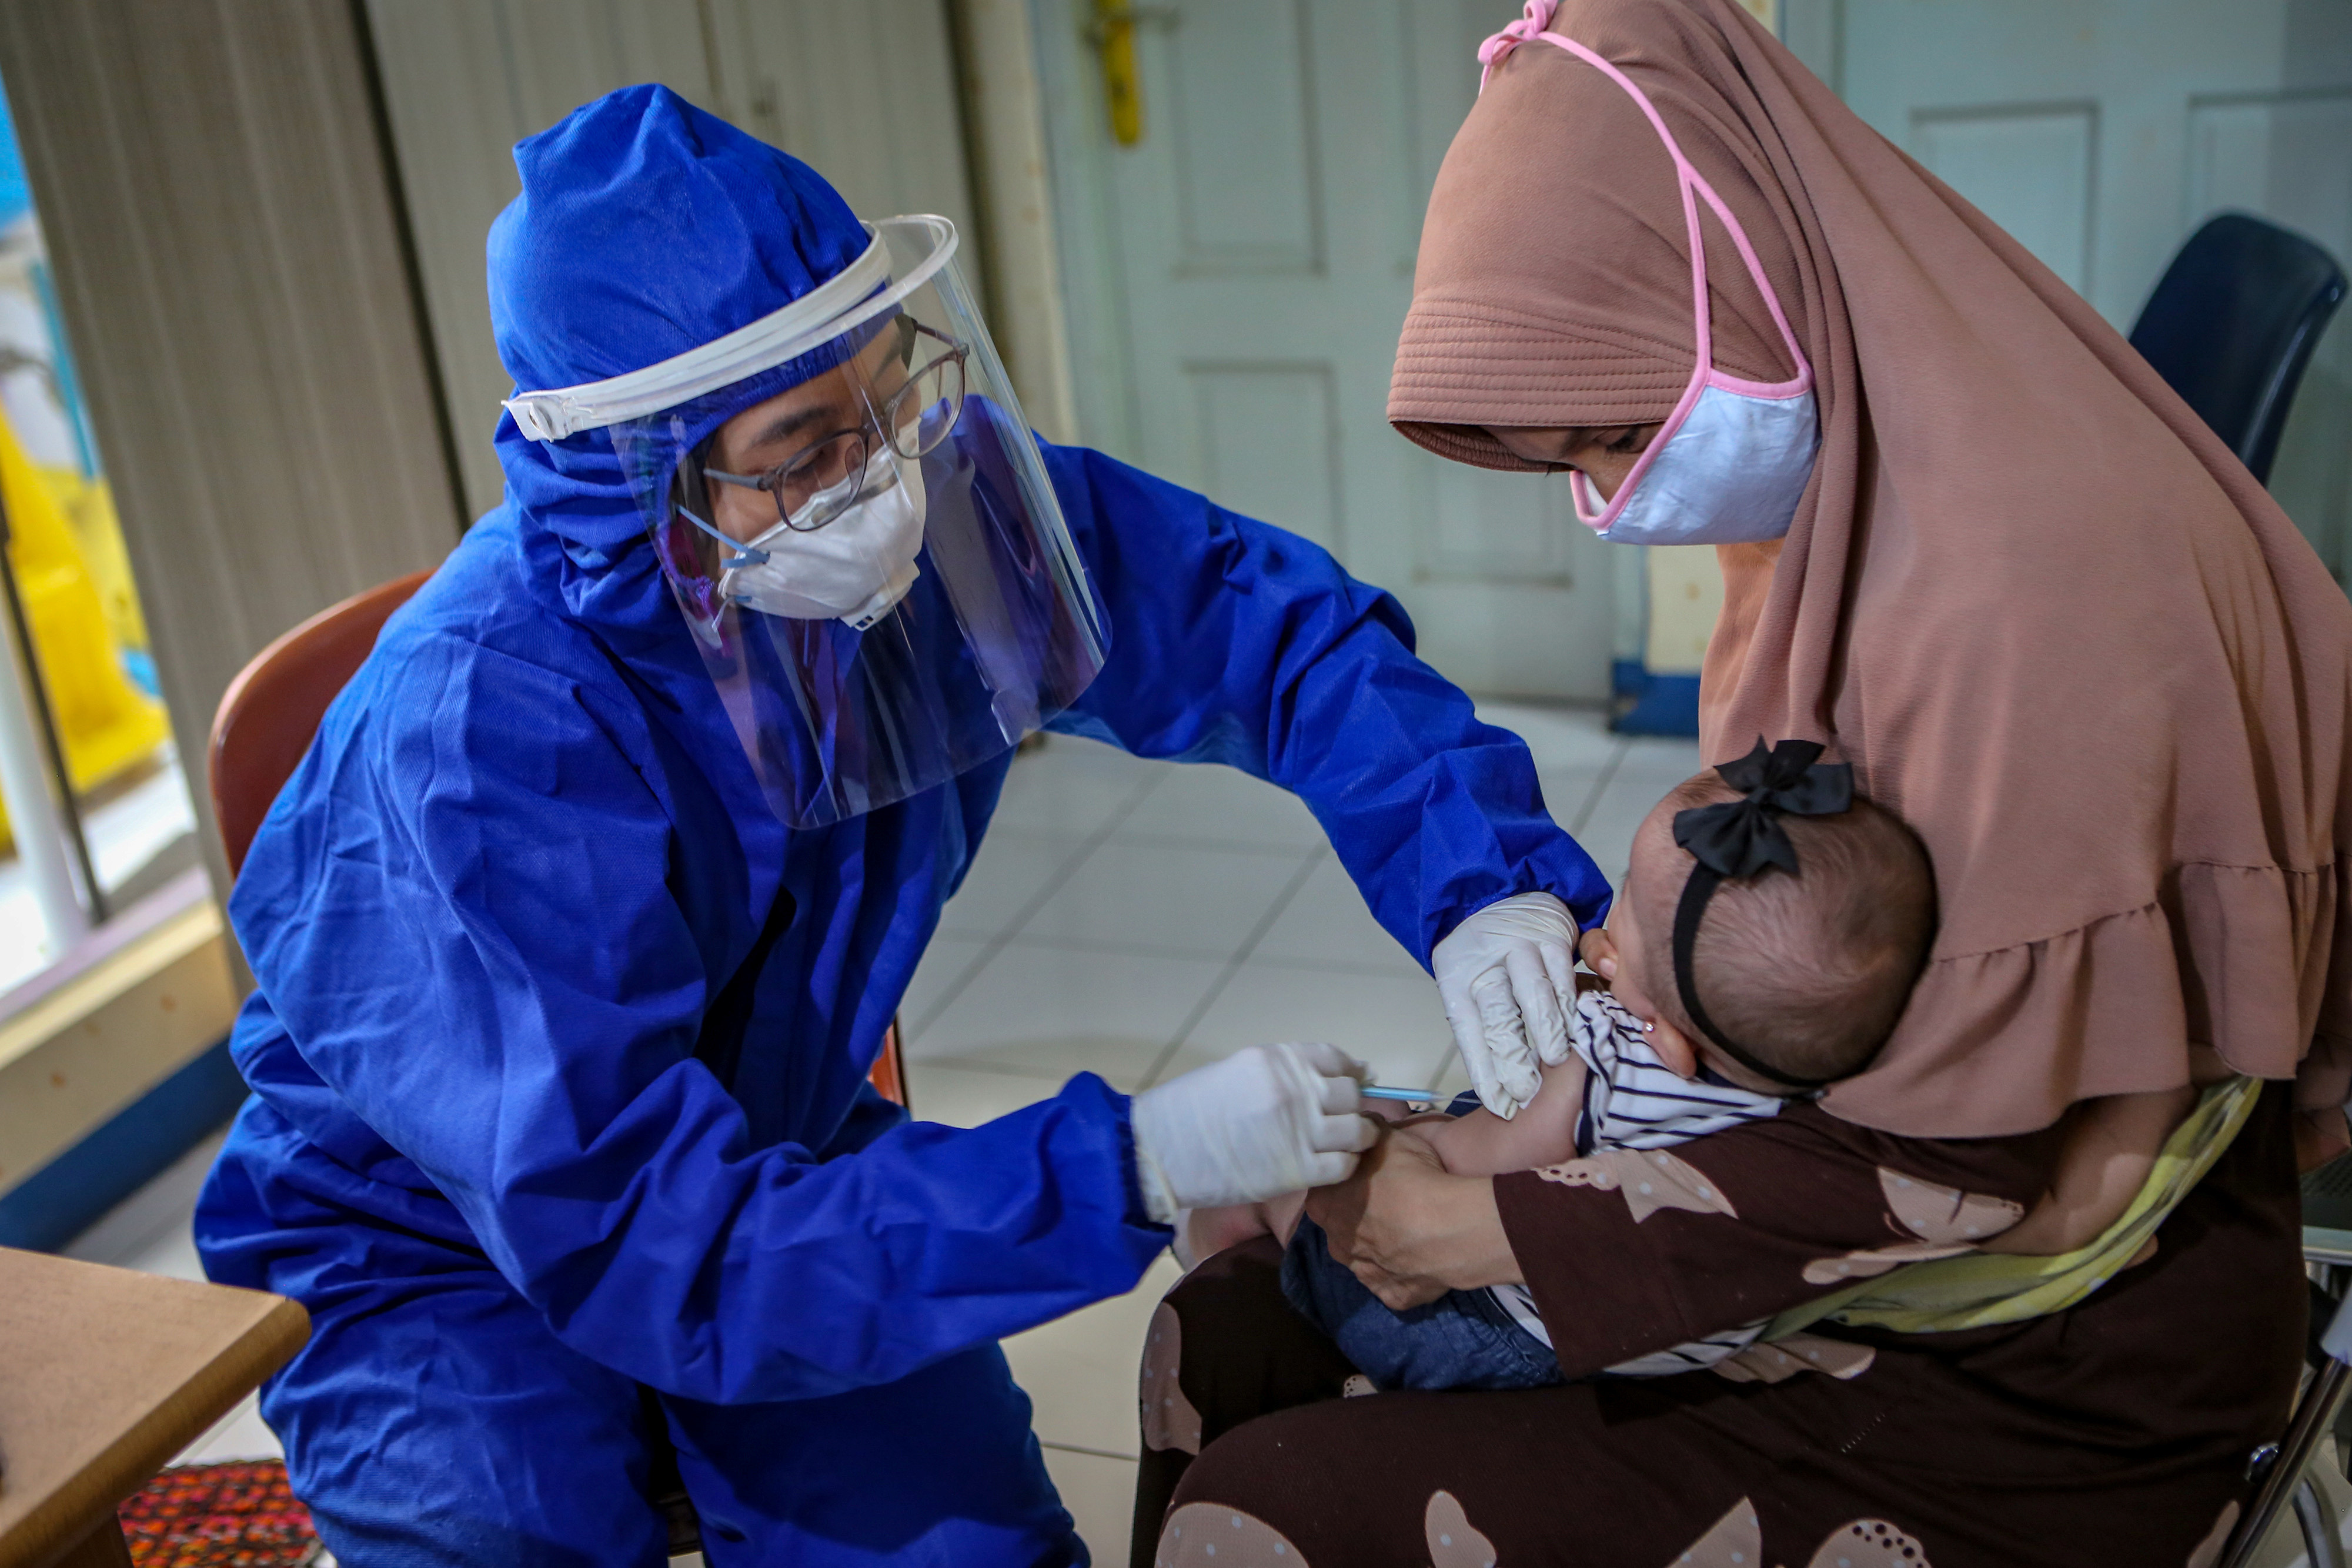 A medical staff member wearing personal protective equipment (PPE) vaccinates a baby, amid the coronavirus disease (COVID-19) outbreak, in Tangerang, near Jakarta, Indonesia May 13, 2020.  Antara Foto/Fauzan/ via REUTERS   ATTENTION EDITORS - THIS IMAGE HAS BEEN SUPPLIED BY A THIRD PARTY. MANDATORY CREDIT. INDONESIA OUT. NO COMMERCIAL OR EDITORIAL SALES IN INDONESIA. - RC2ONG9SDX7M